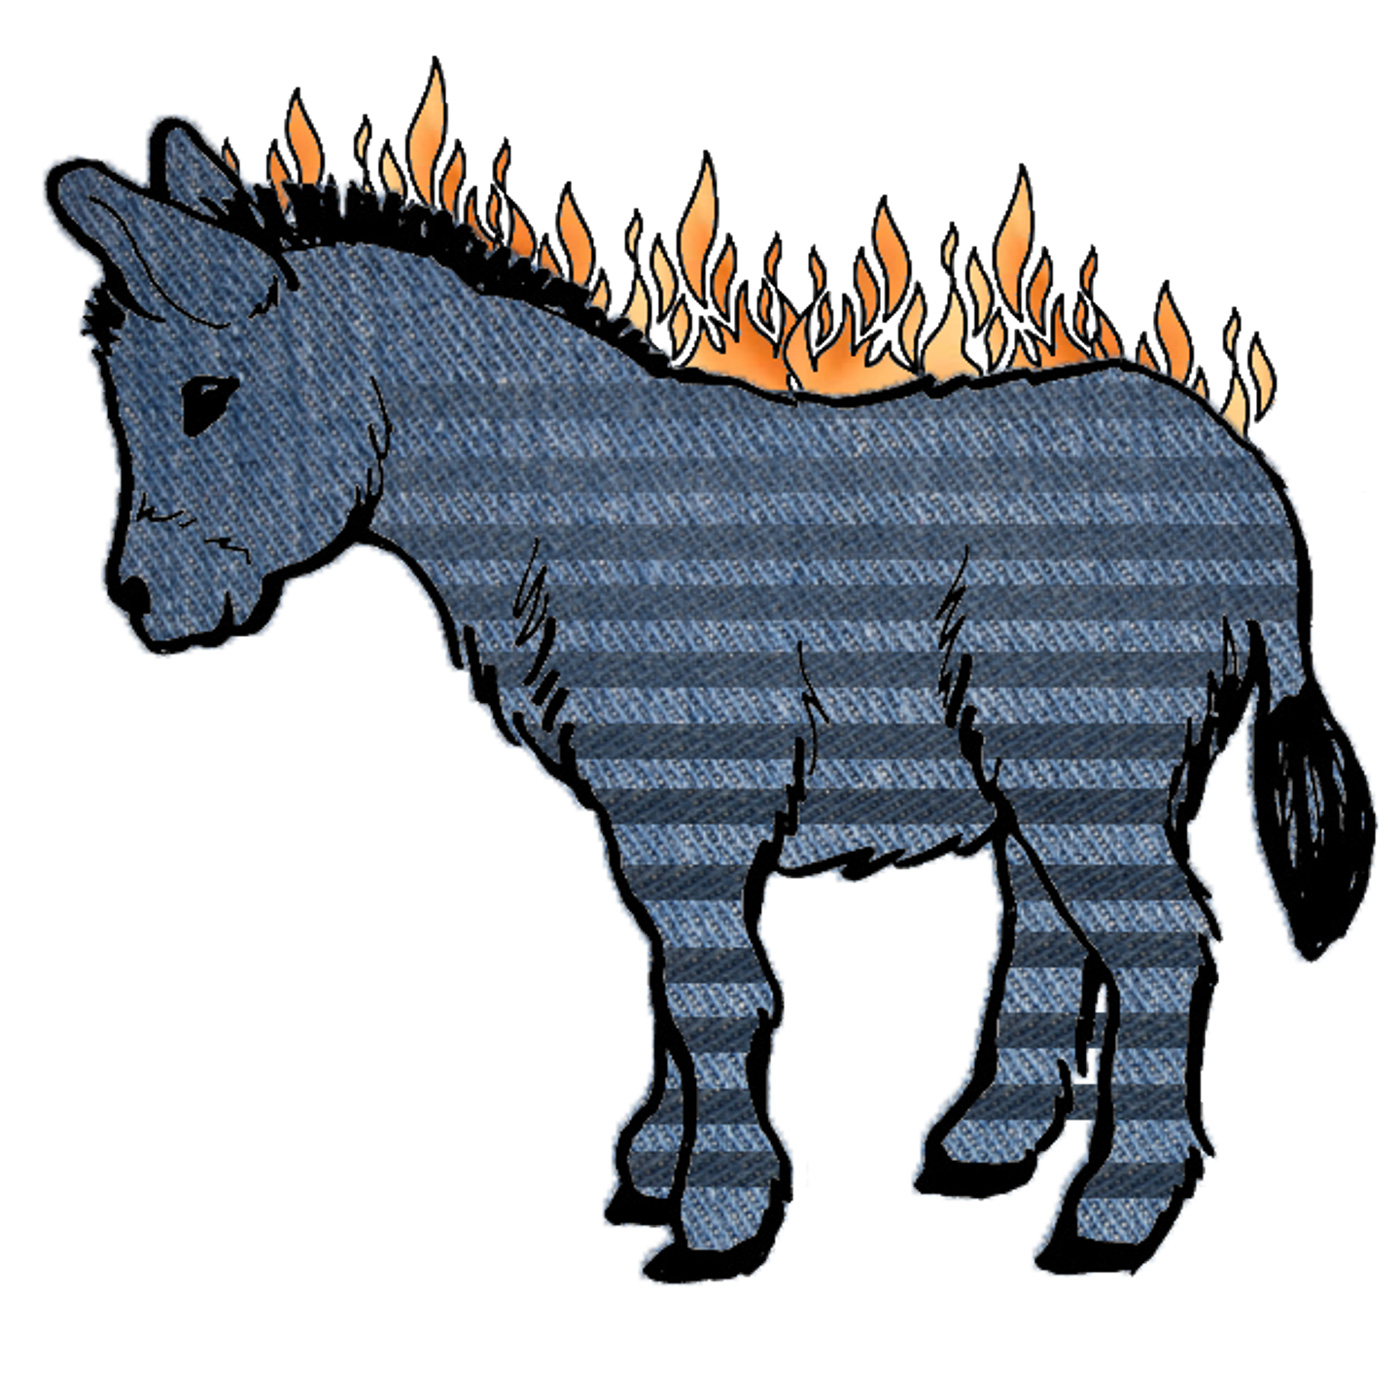 Zonkey clipart picture free download The Flaming Zonkey Podcast | Listen via Stitcher for Podcasts picture free download